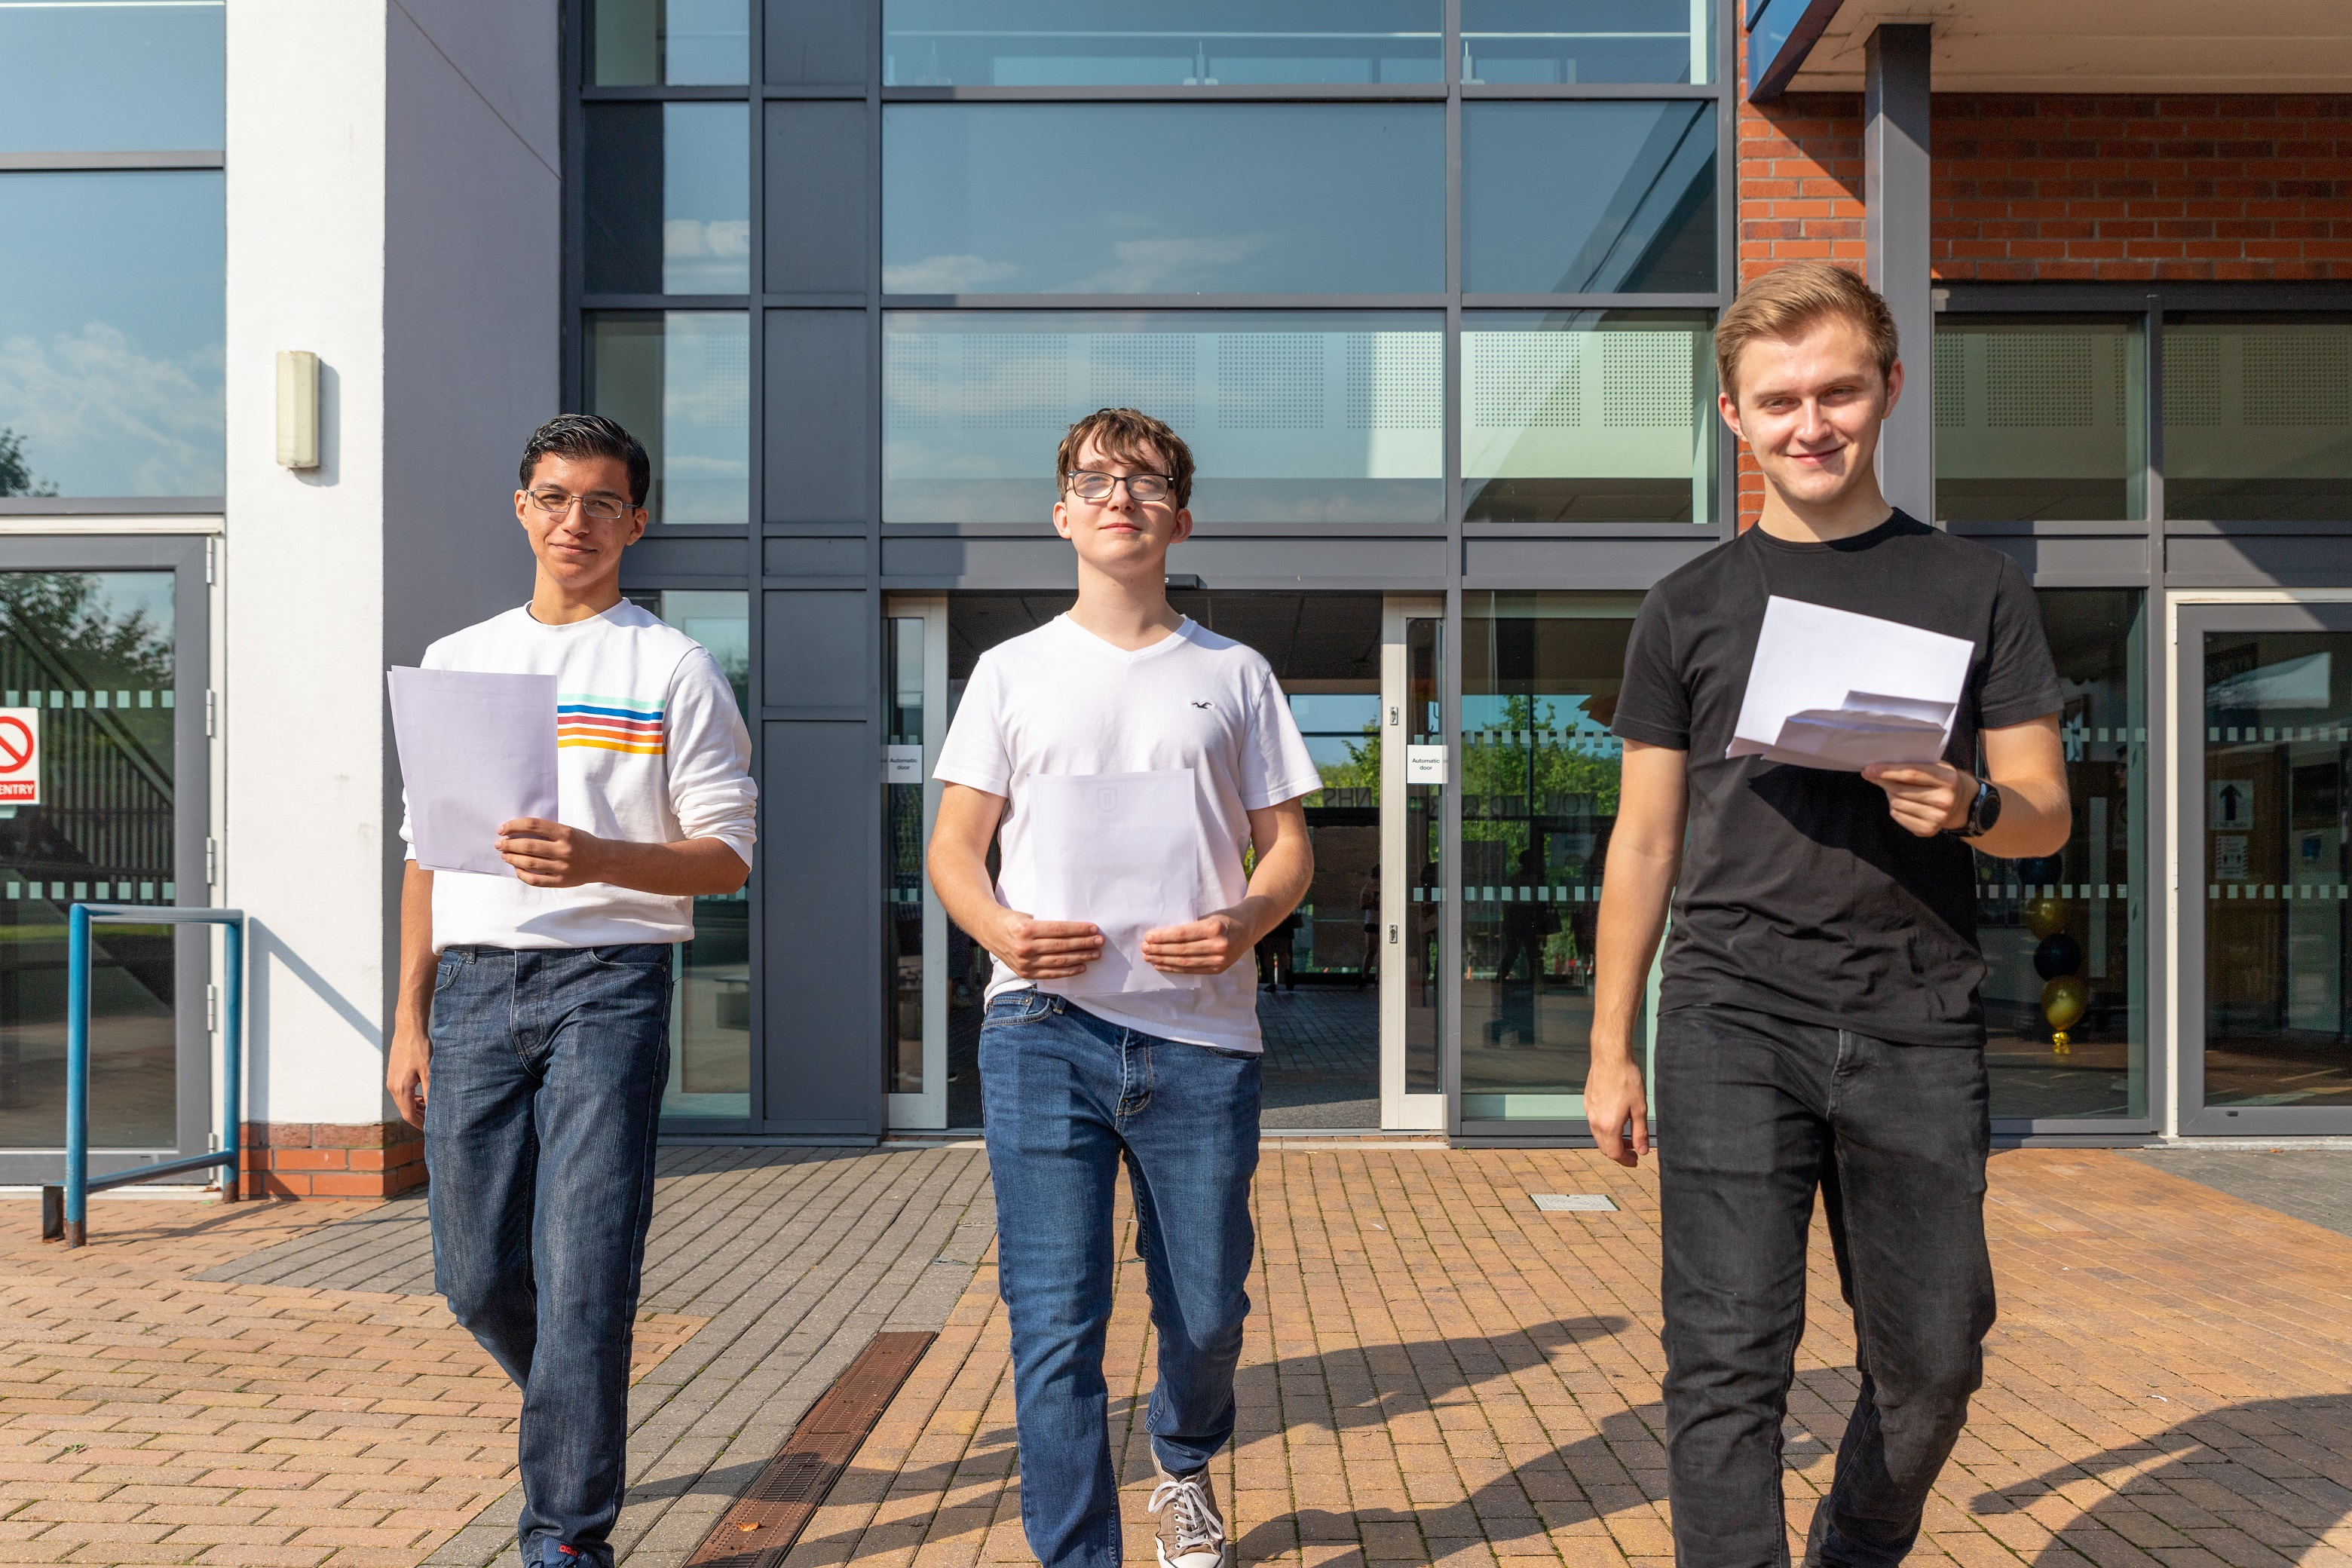 Some Rainford Sixth Form students will go to university, embark on an apprenticeship or head into the world of work